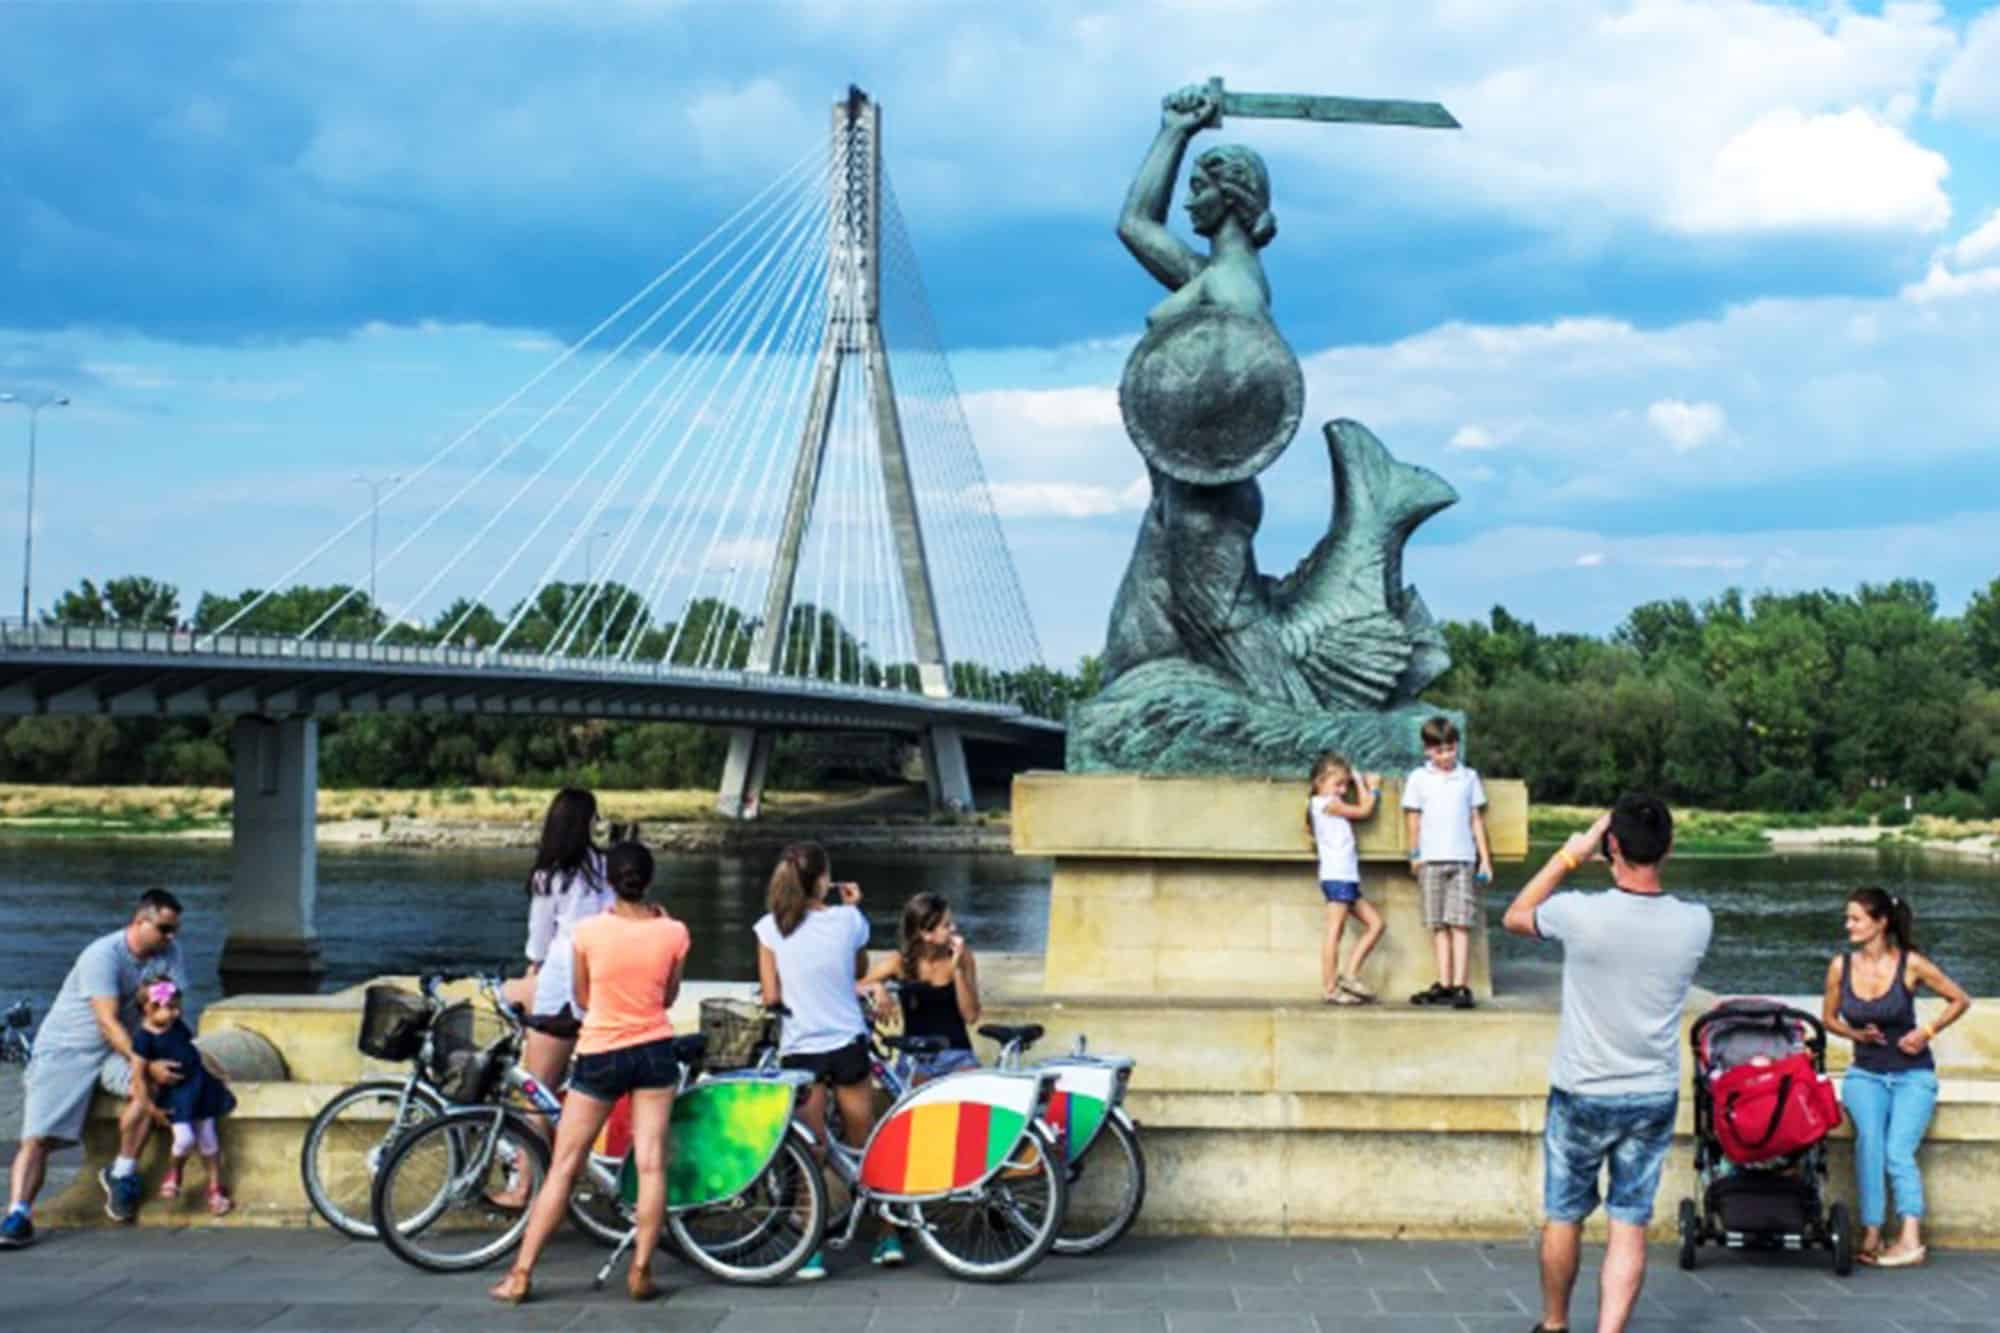 Bike Tour in Warsaw next to the monument of Mermaid